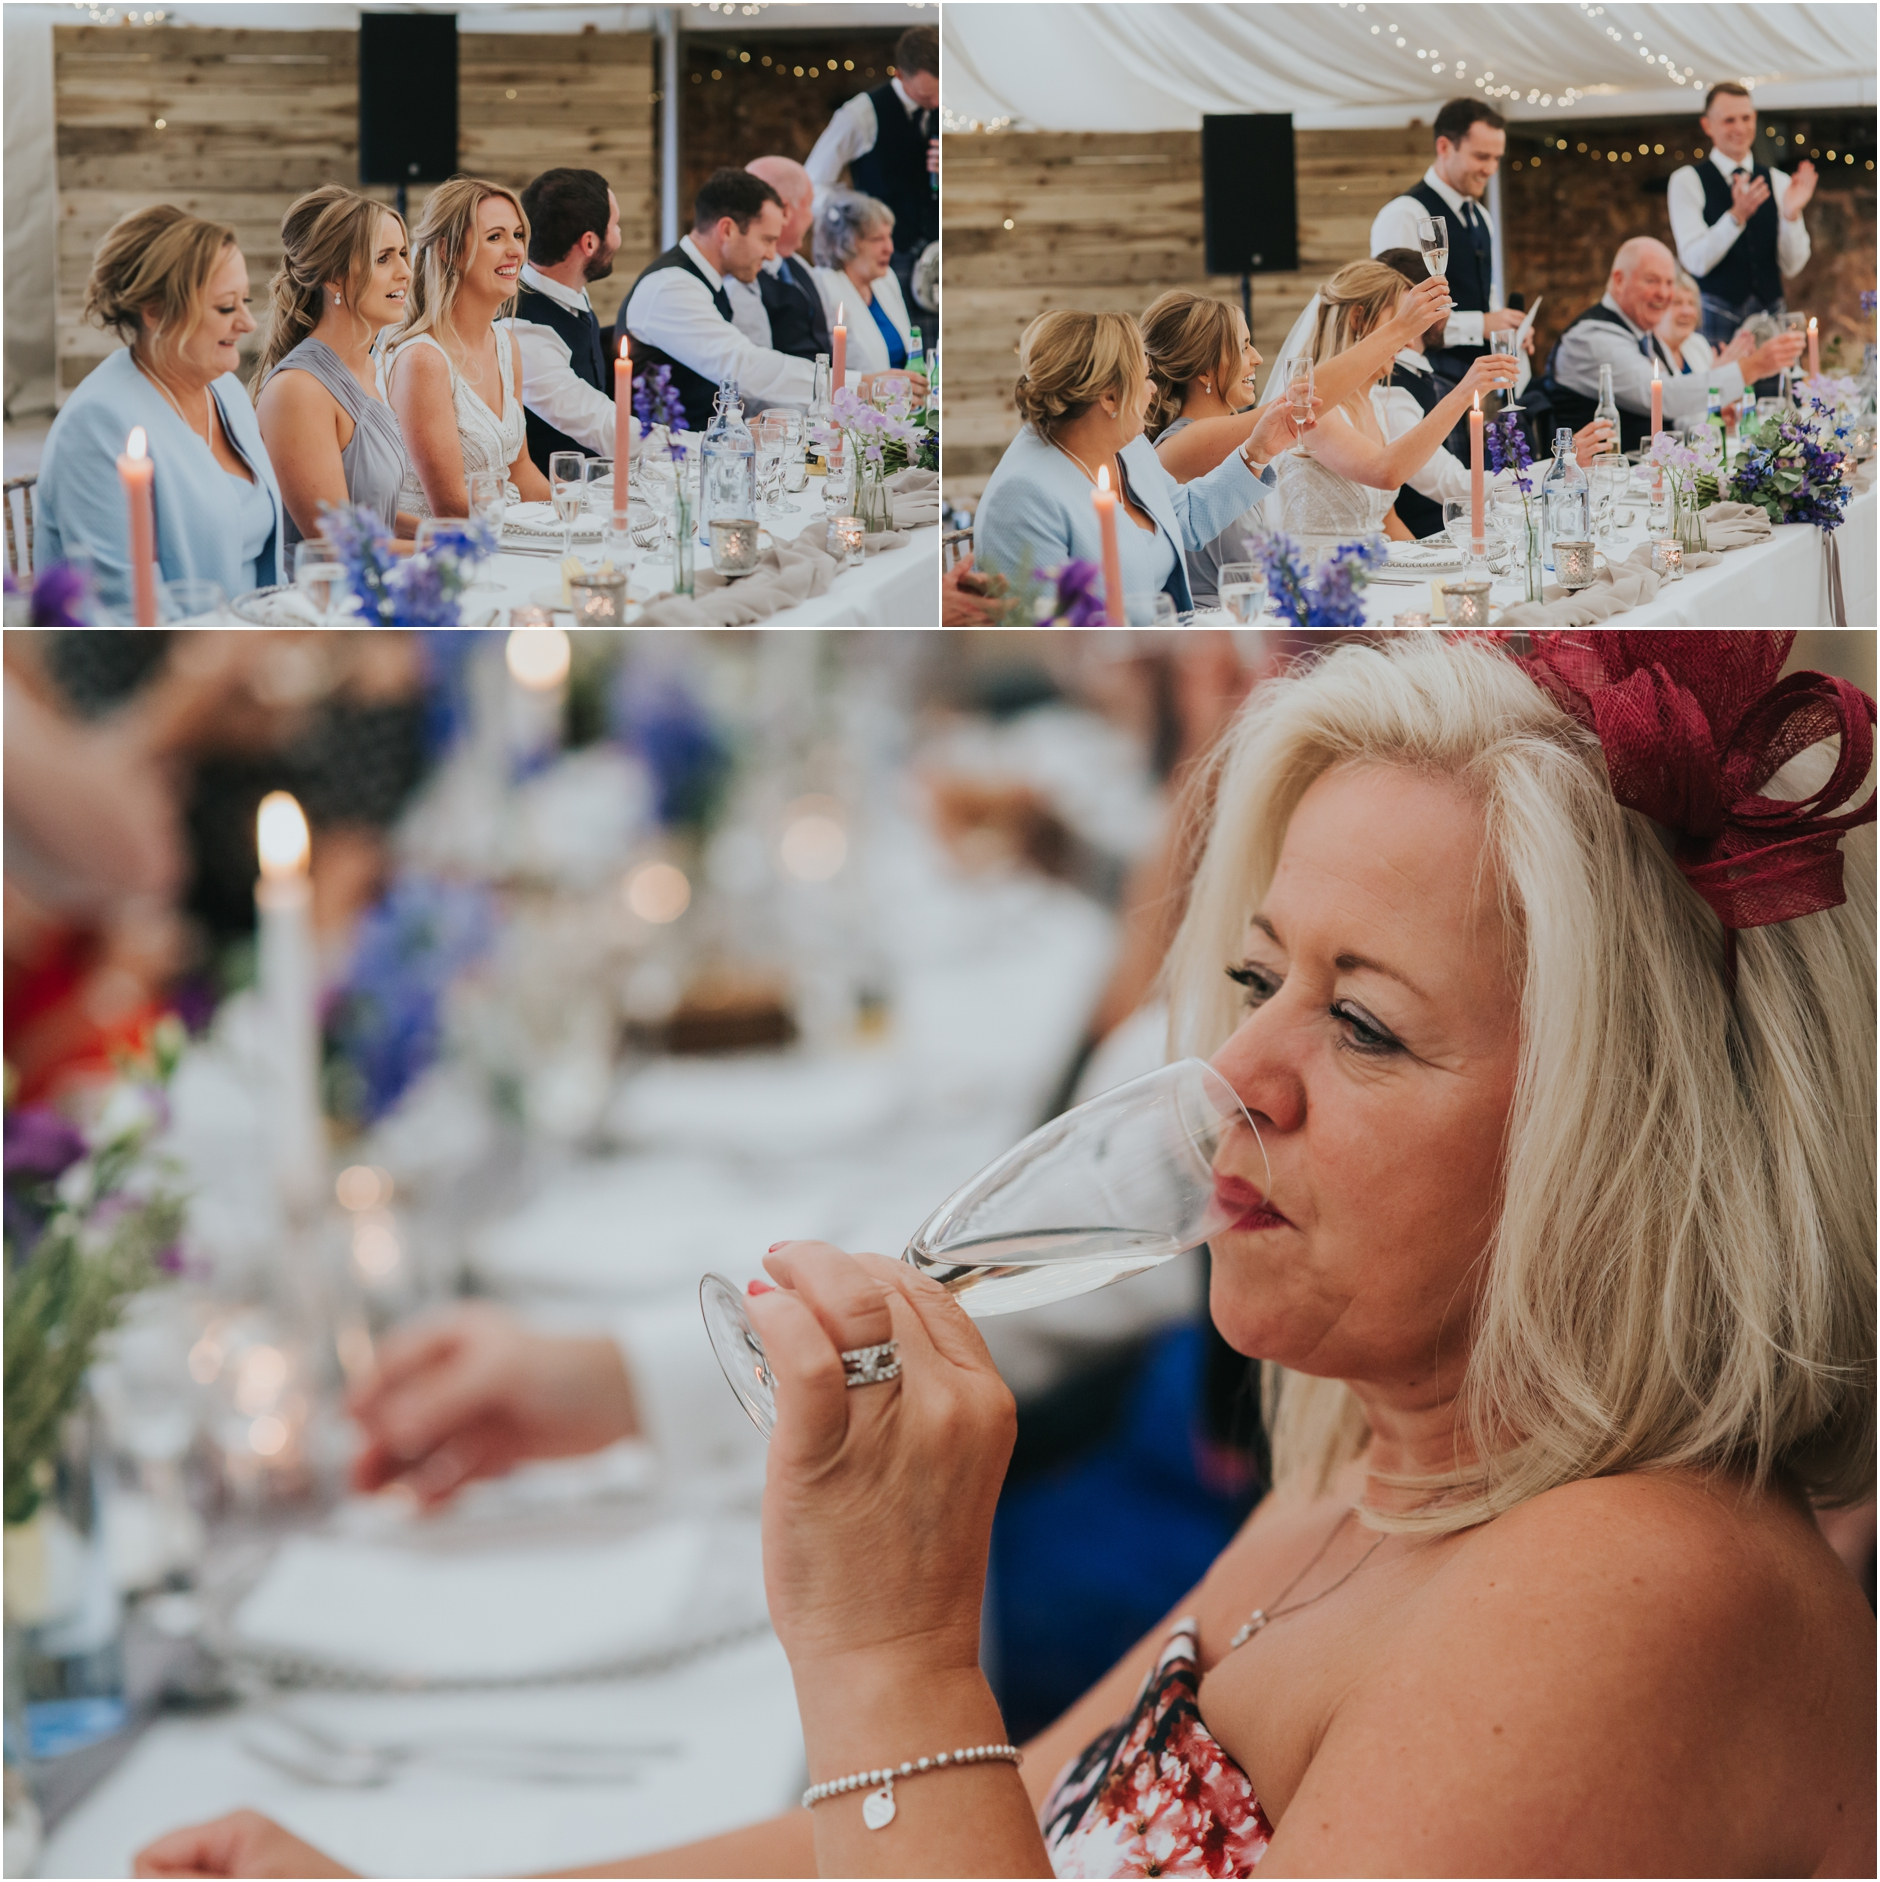 Rustic And Stylish Wedding At Cow Shed, Crail- Gemma